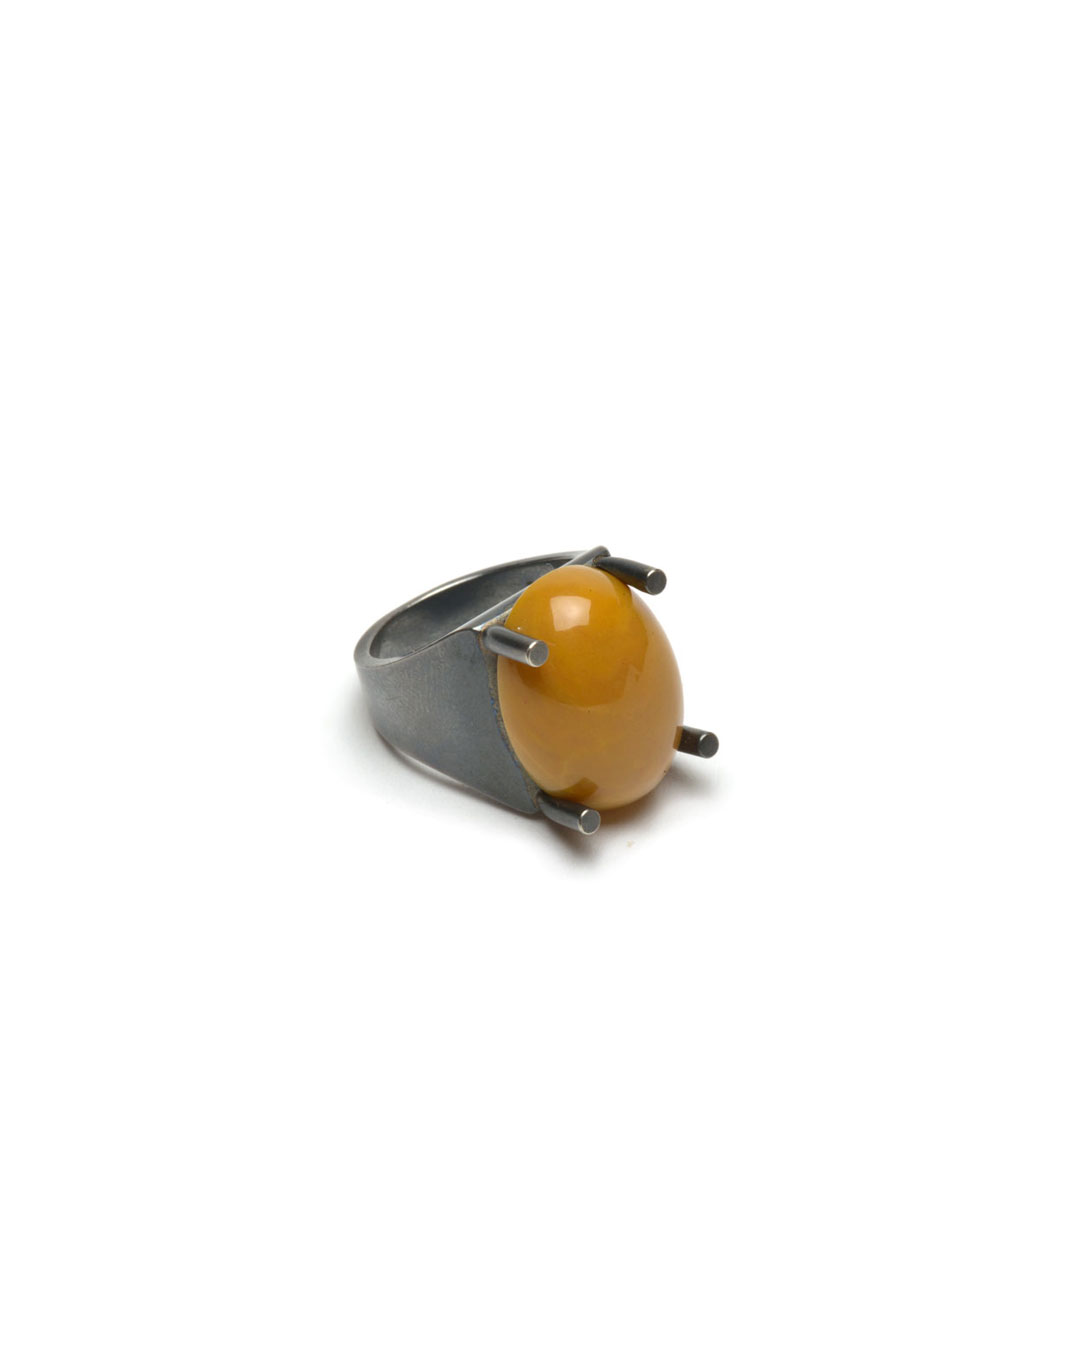 Ute Eitzenhöfer, untitled, 2014, ring; silver, jasper, 30 x 20 x 15 mm, €500